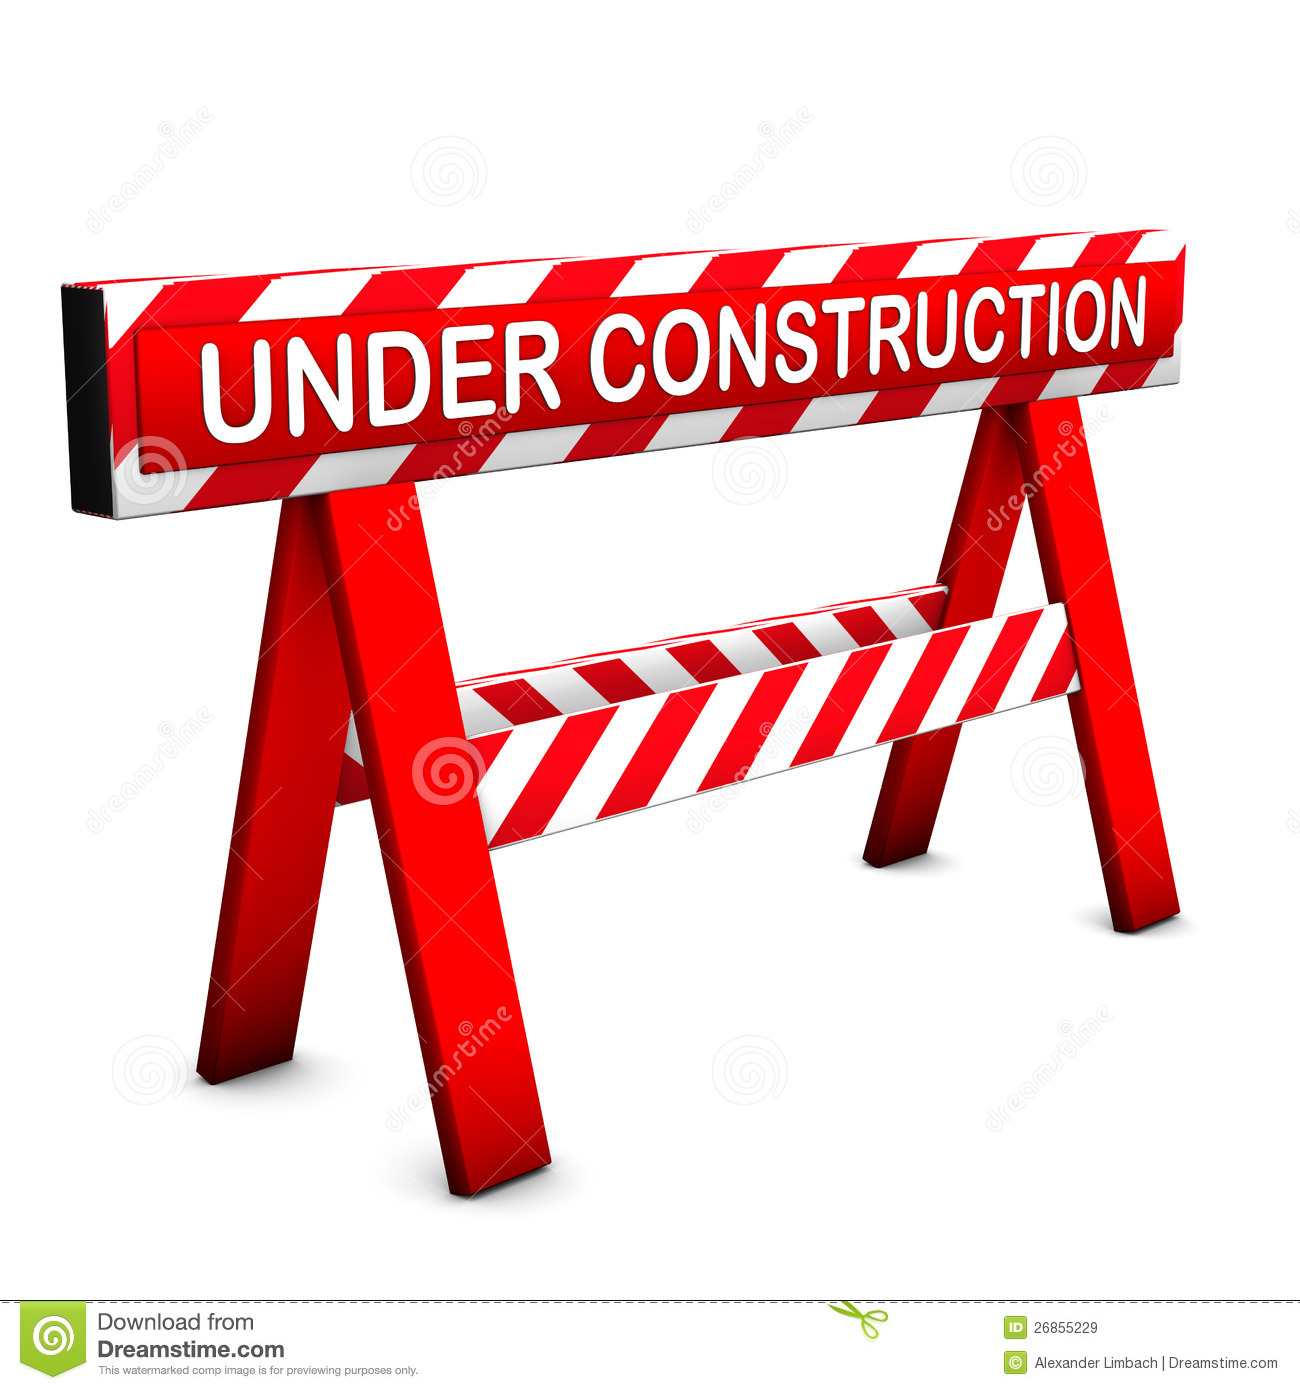 Under construction icon, with red and white colors. White background.